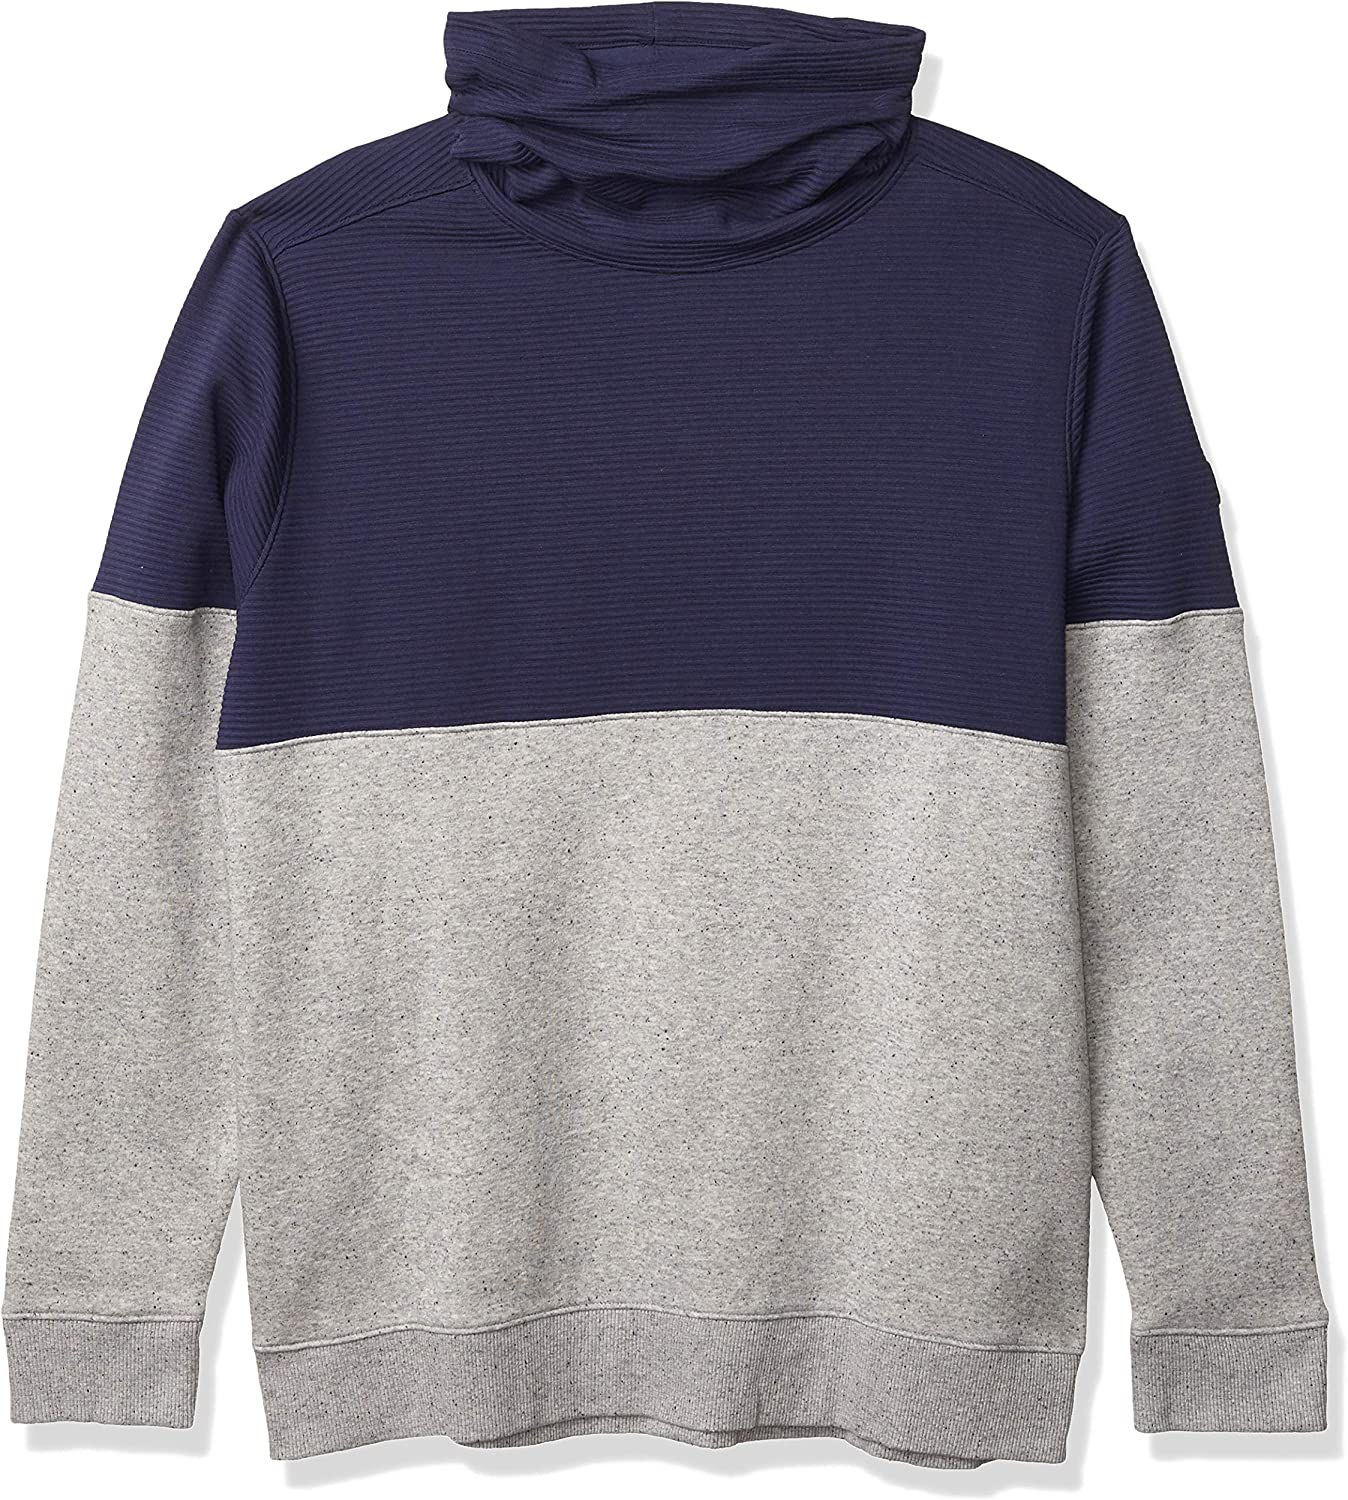 Under Armor New products, world's highest quality popular! Men's Sportstyle Quilted Our shop most popular Mock Channel